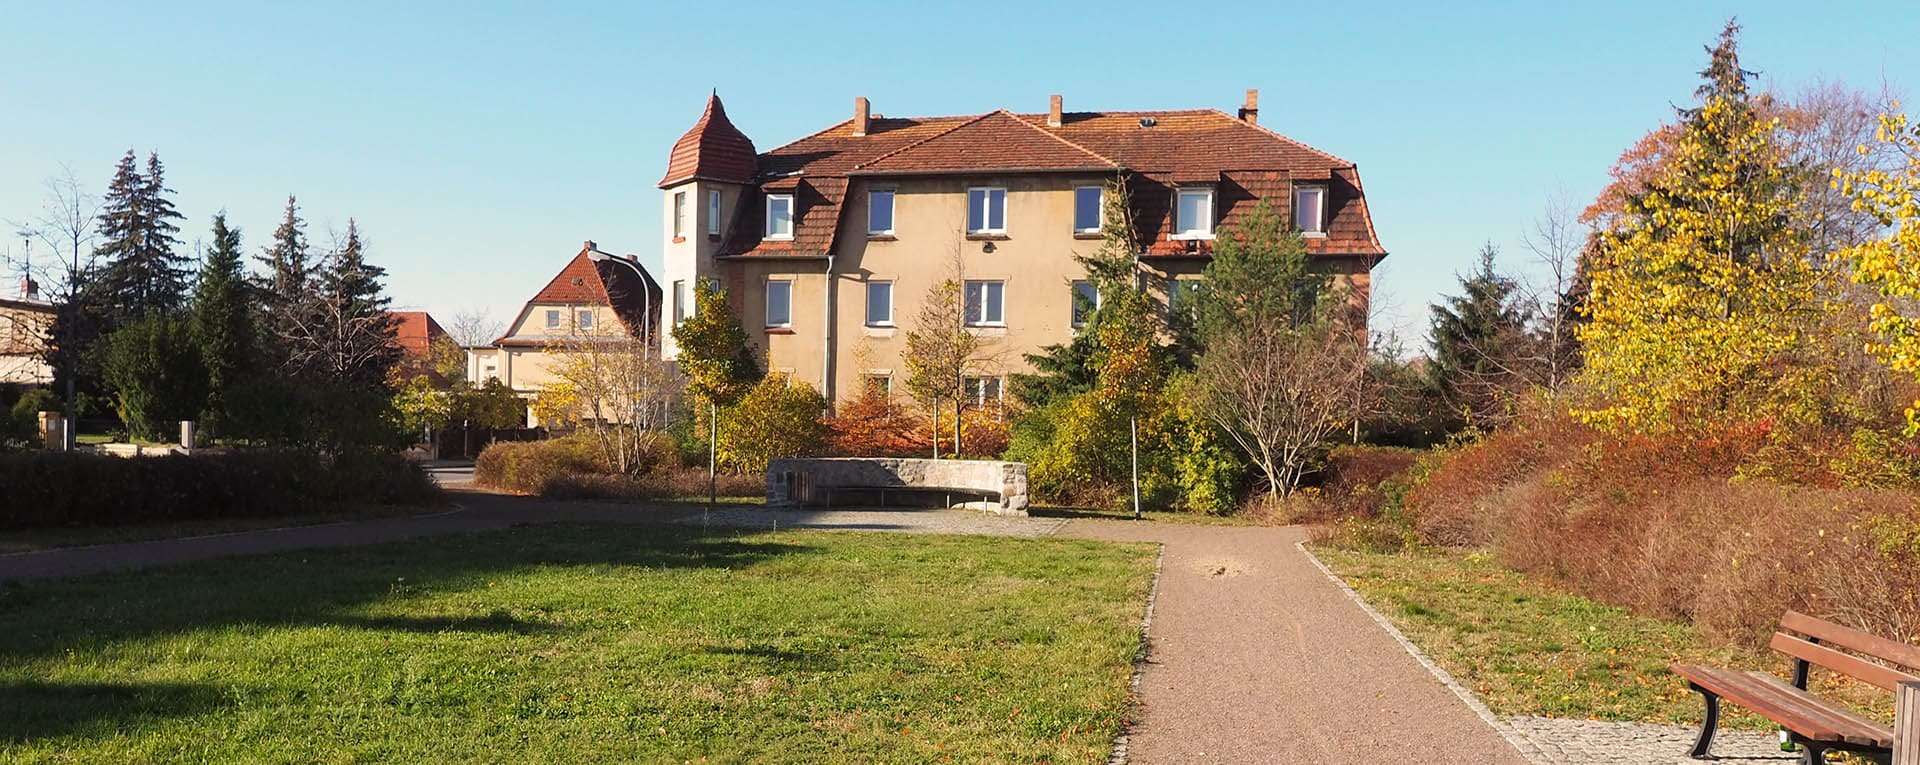 Entire property in Welzow for sale